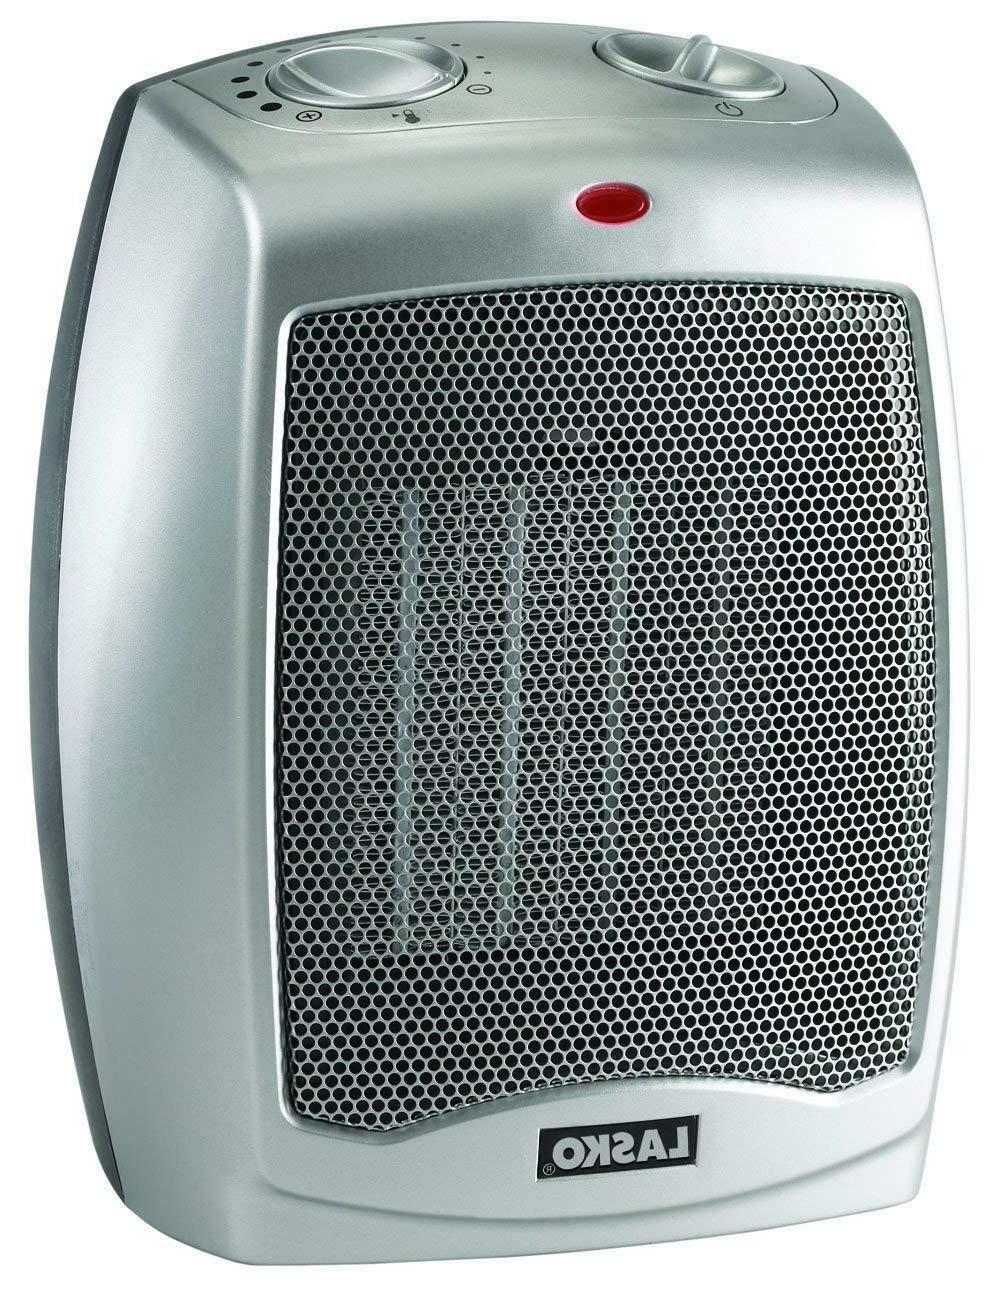 new personal ceramic portable space heater w